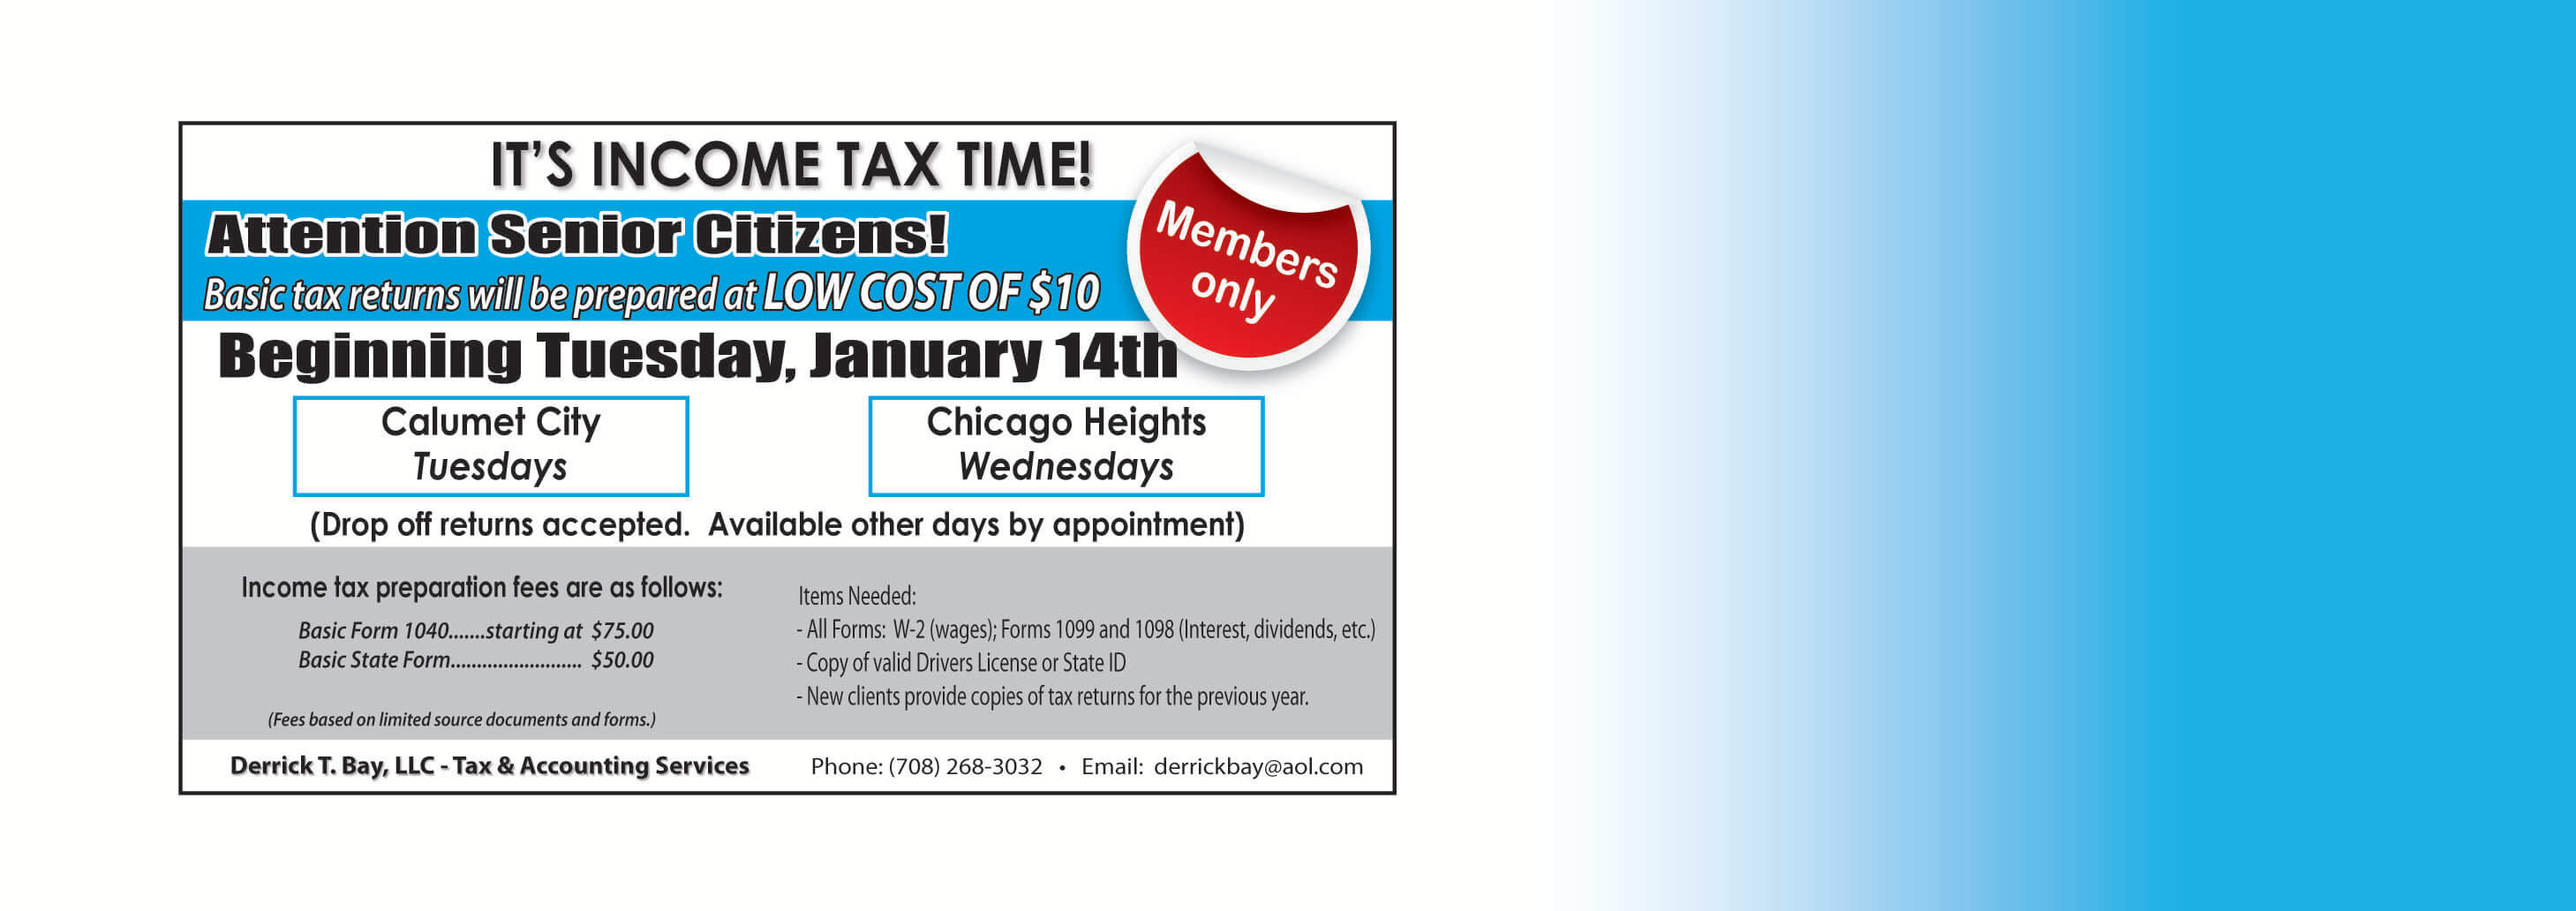 It's Income Tax Time: Ask for Derrick Bay for Tax Filing Information